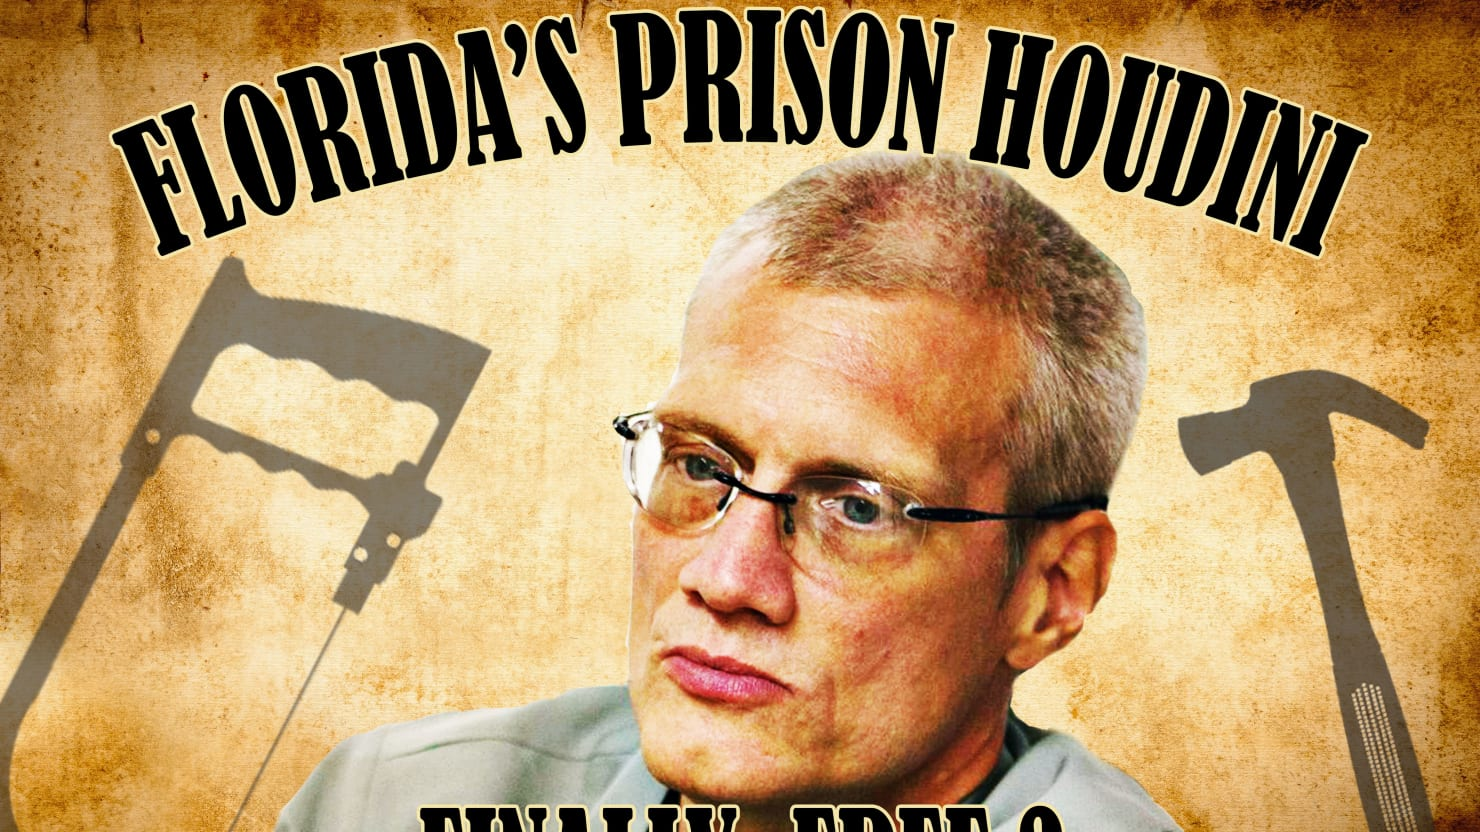 Florida's Prison Houdini Could Finally Go Free